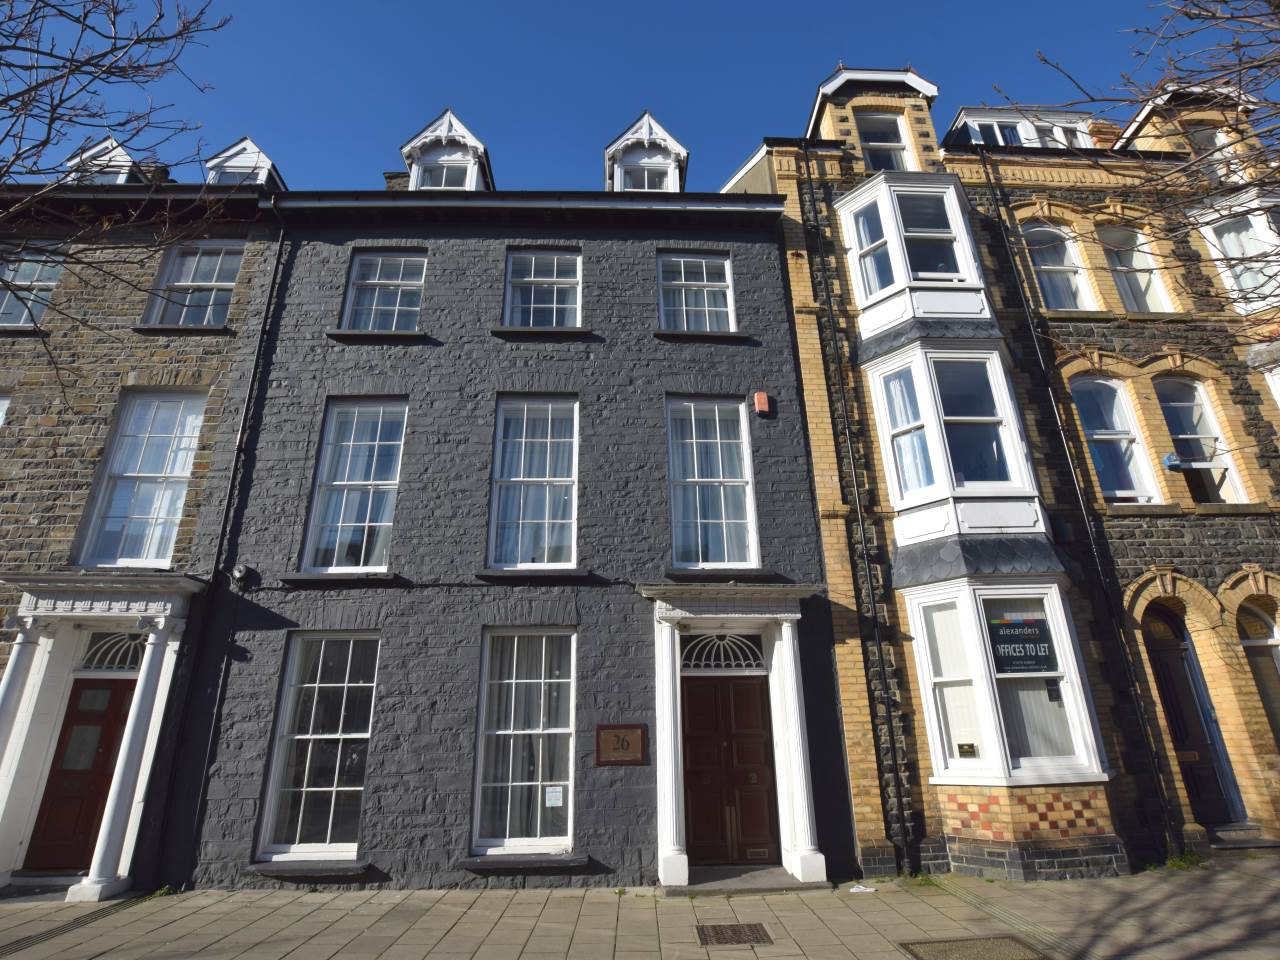 3 bed flat to rent in North Parade, Aberystwyth - Property Image 1